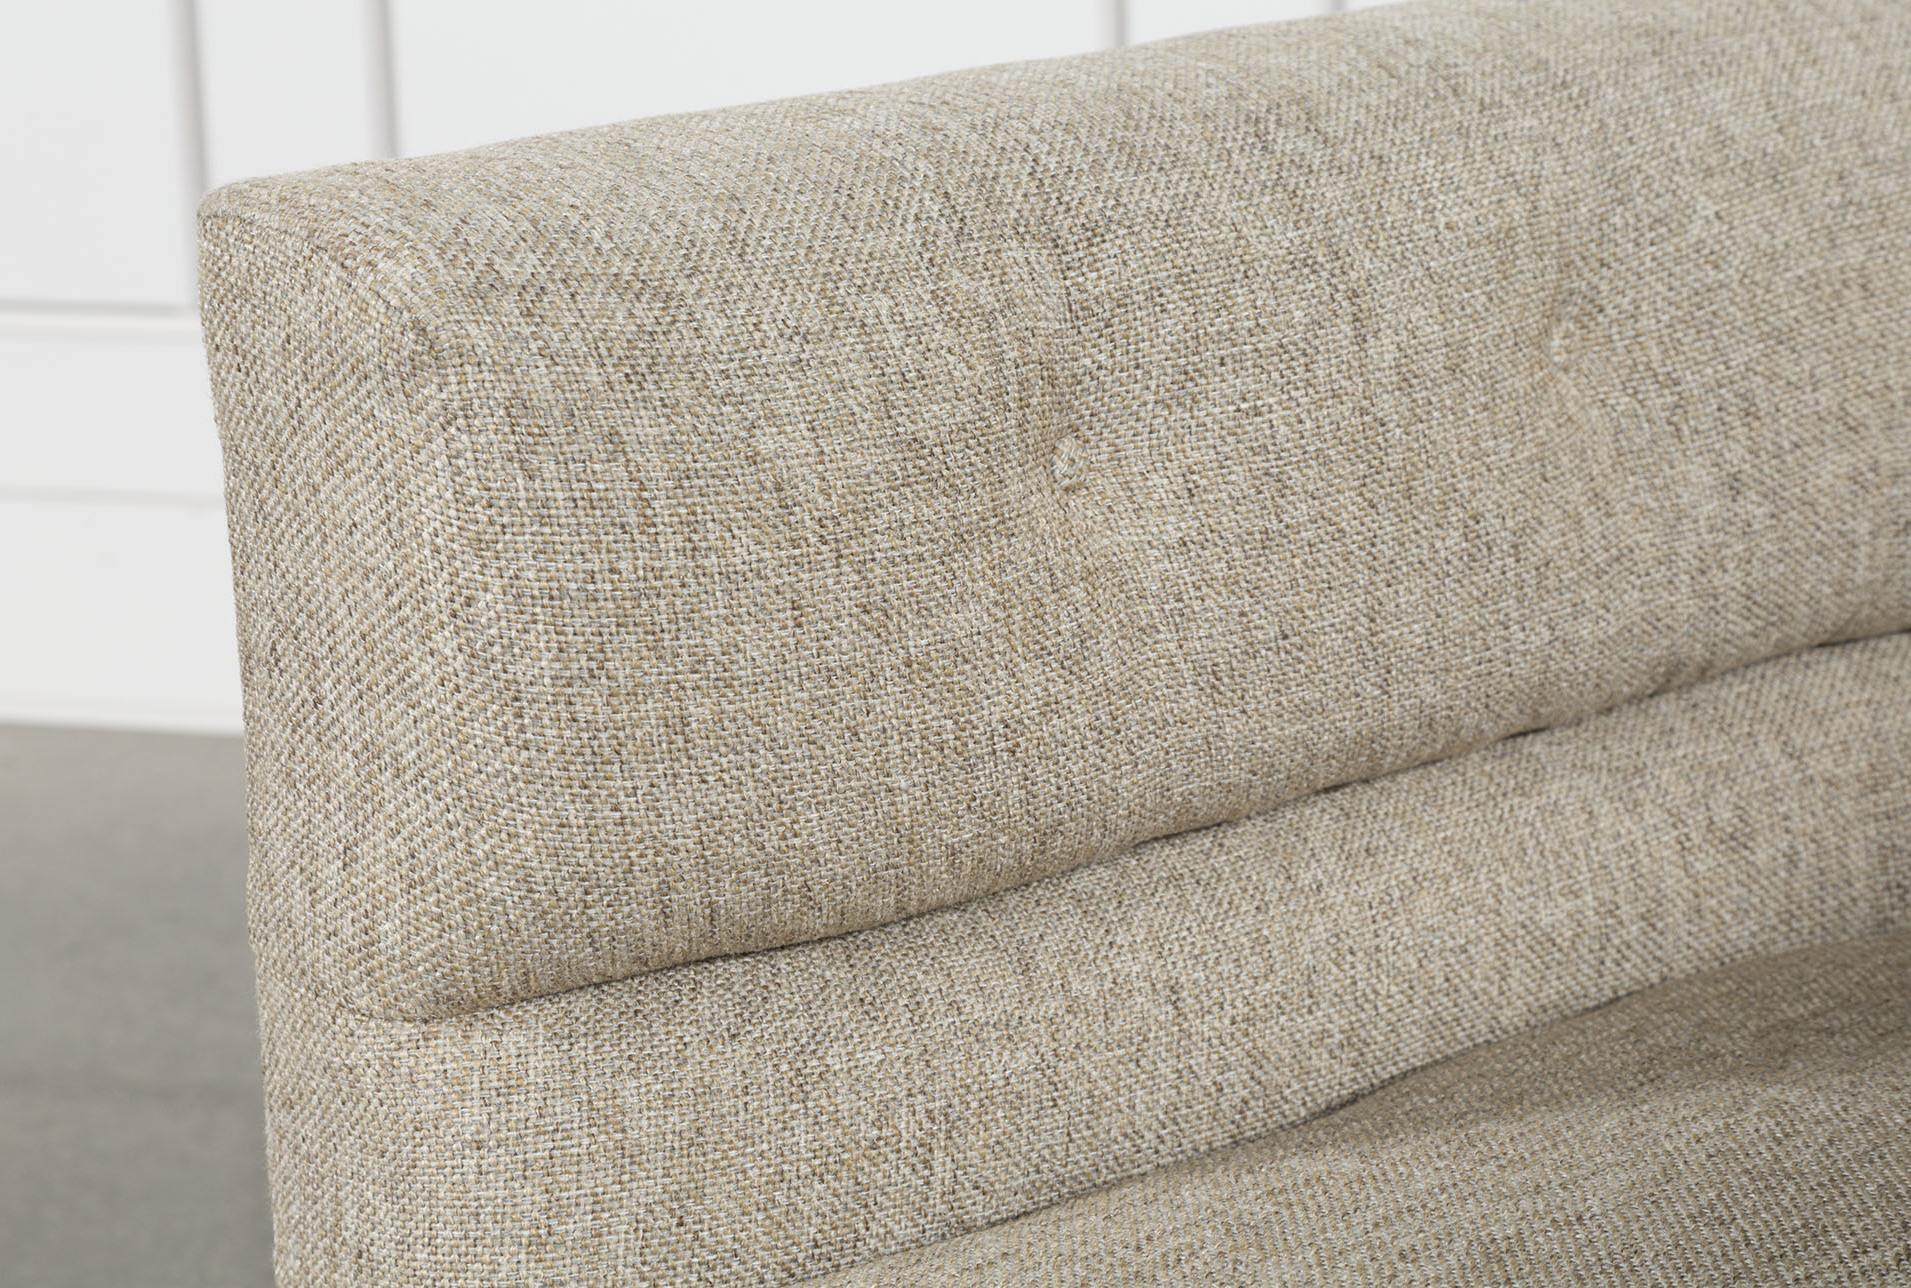 Matteo Arm Sofa Chairs By Nate Berkus And Jeremiah Brent Intended For Trendy Matteo Estate Sofanate Berkus And Jeremiah Brent In  (View 5 of 20)